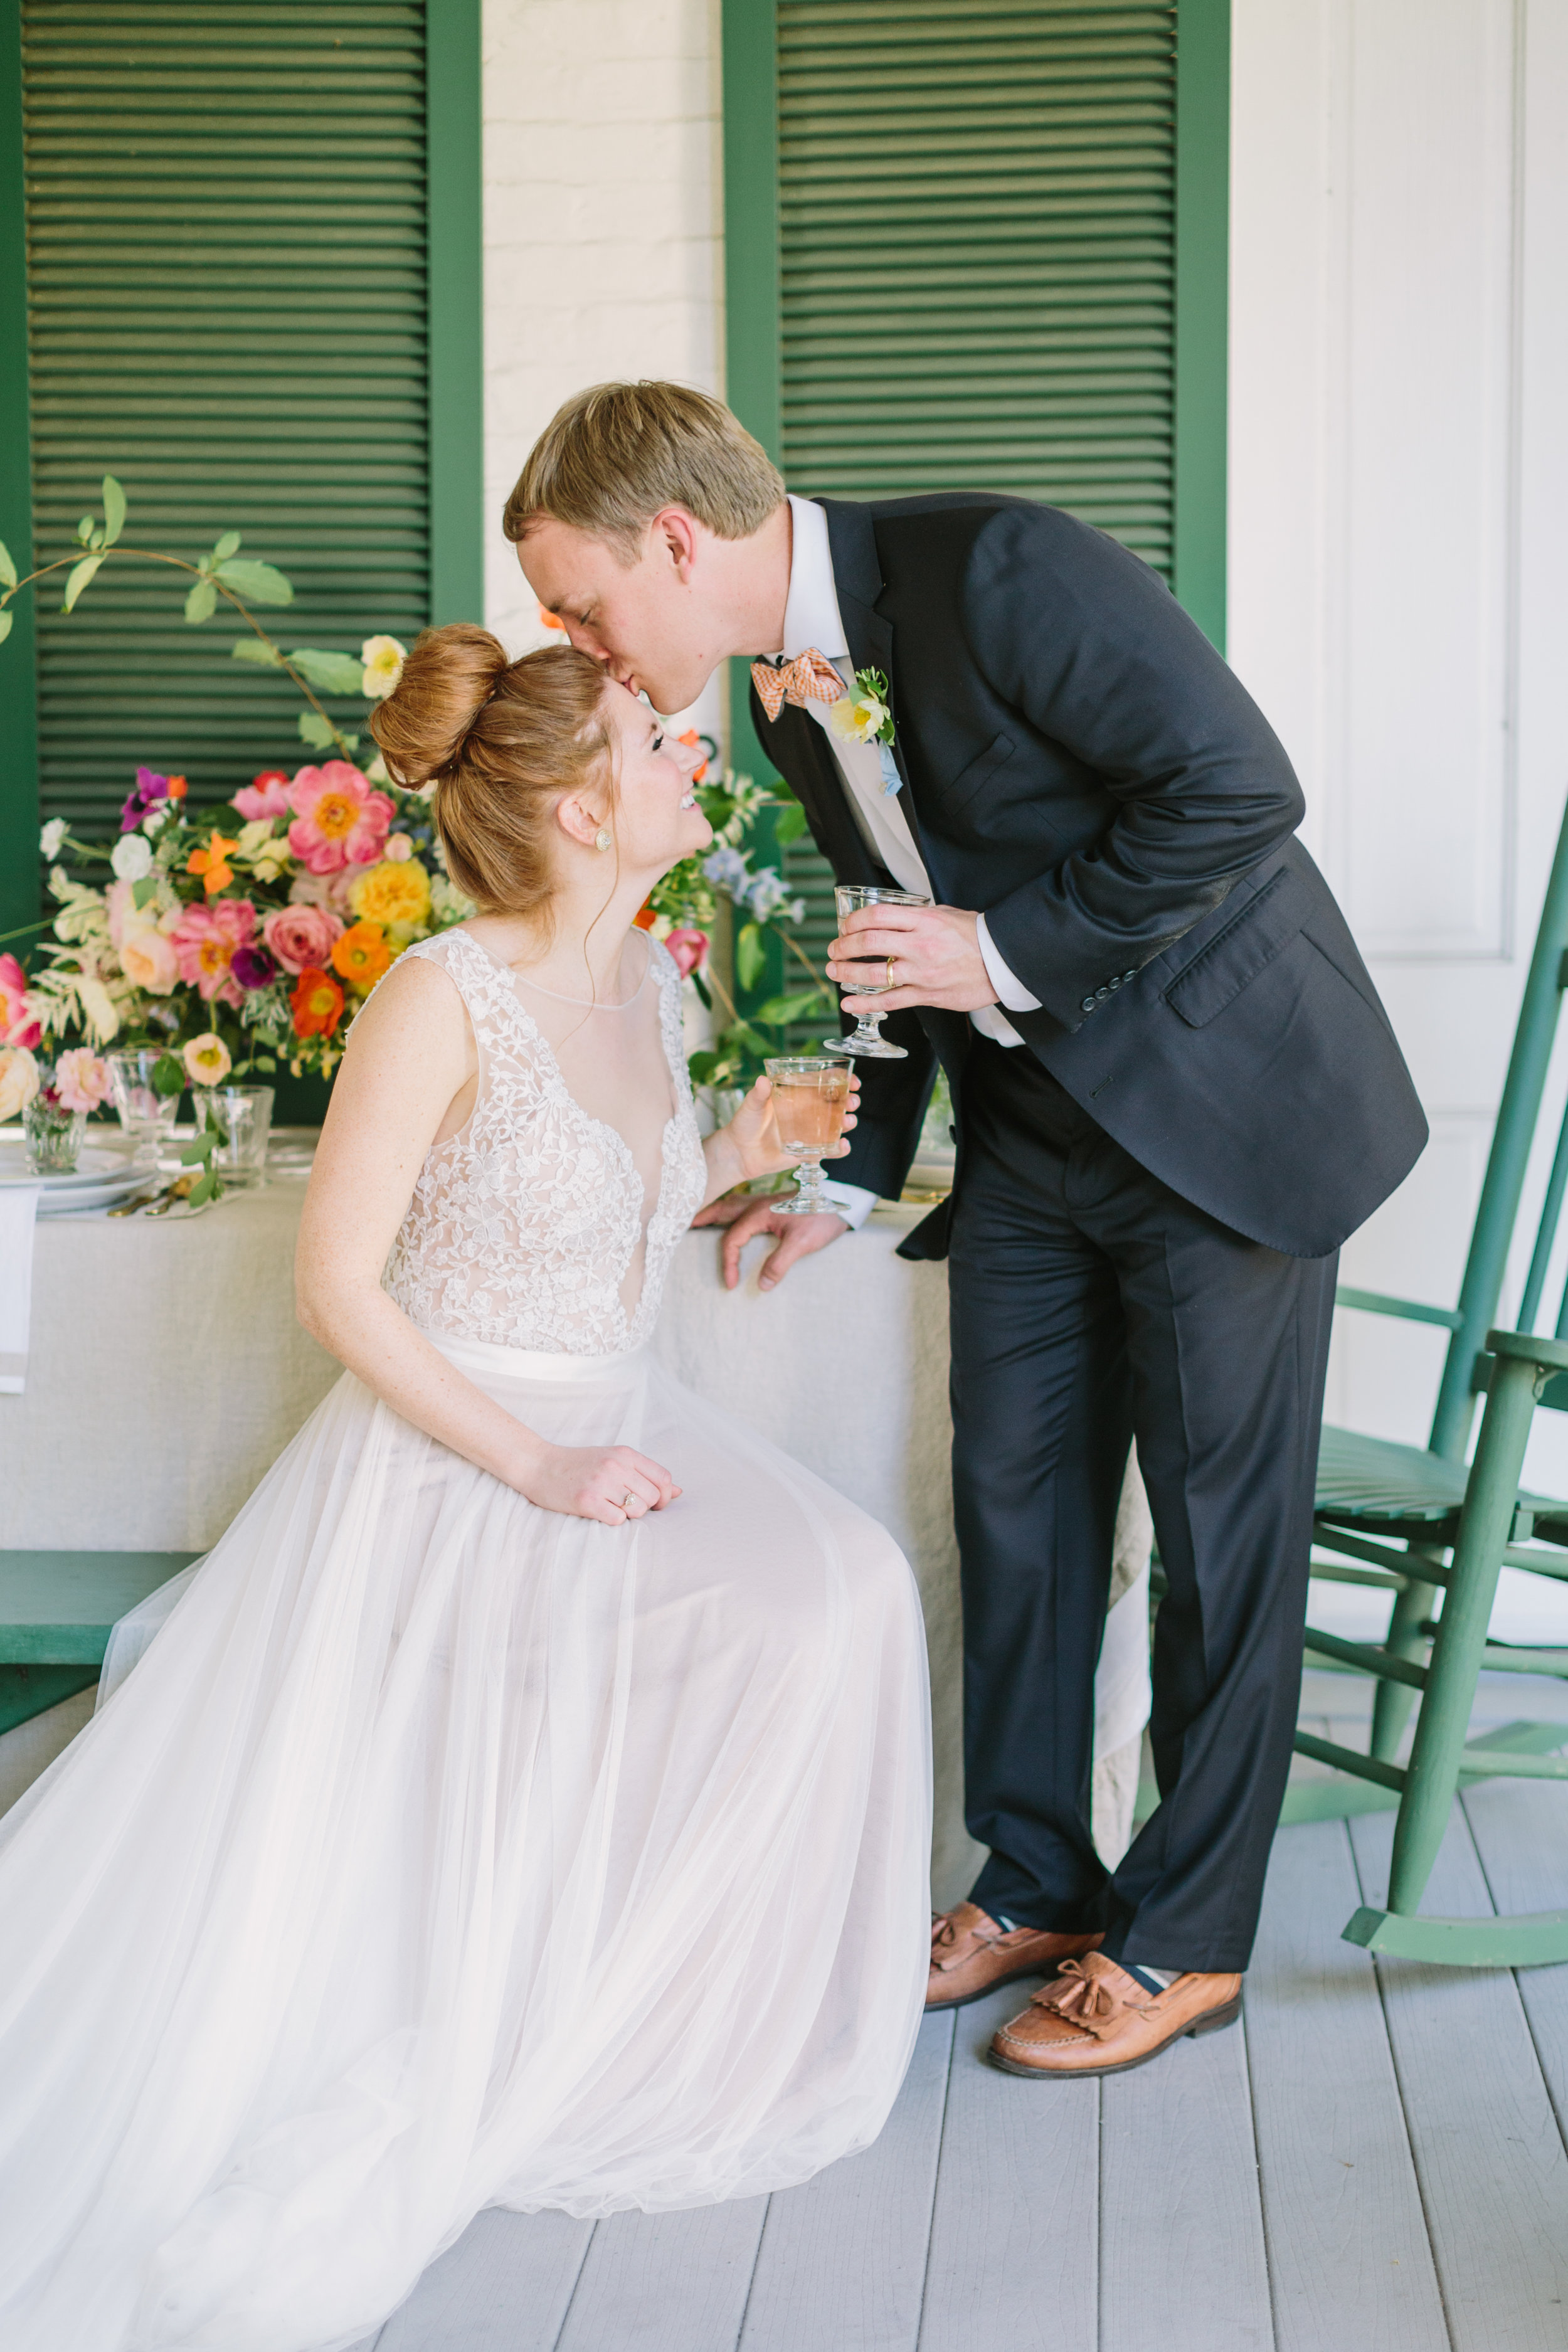 jessica-zimmerman-events-summer-wedding-colorful-bride-groom.JPG